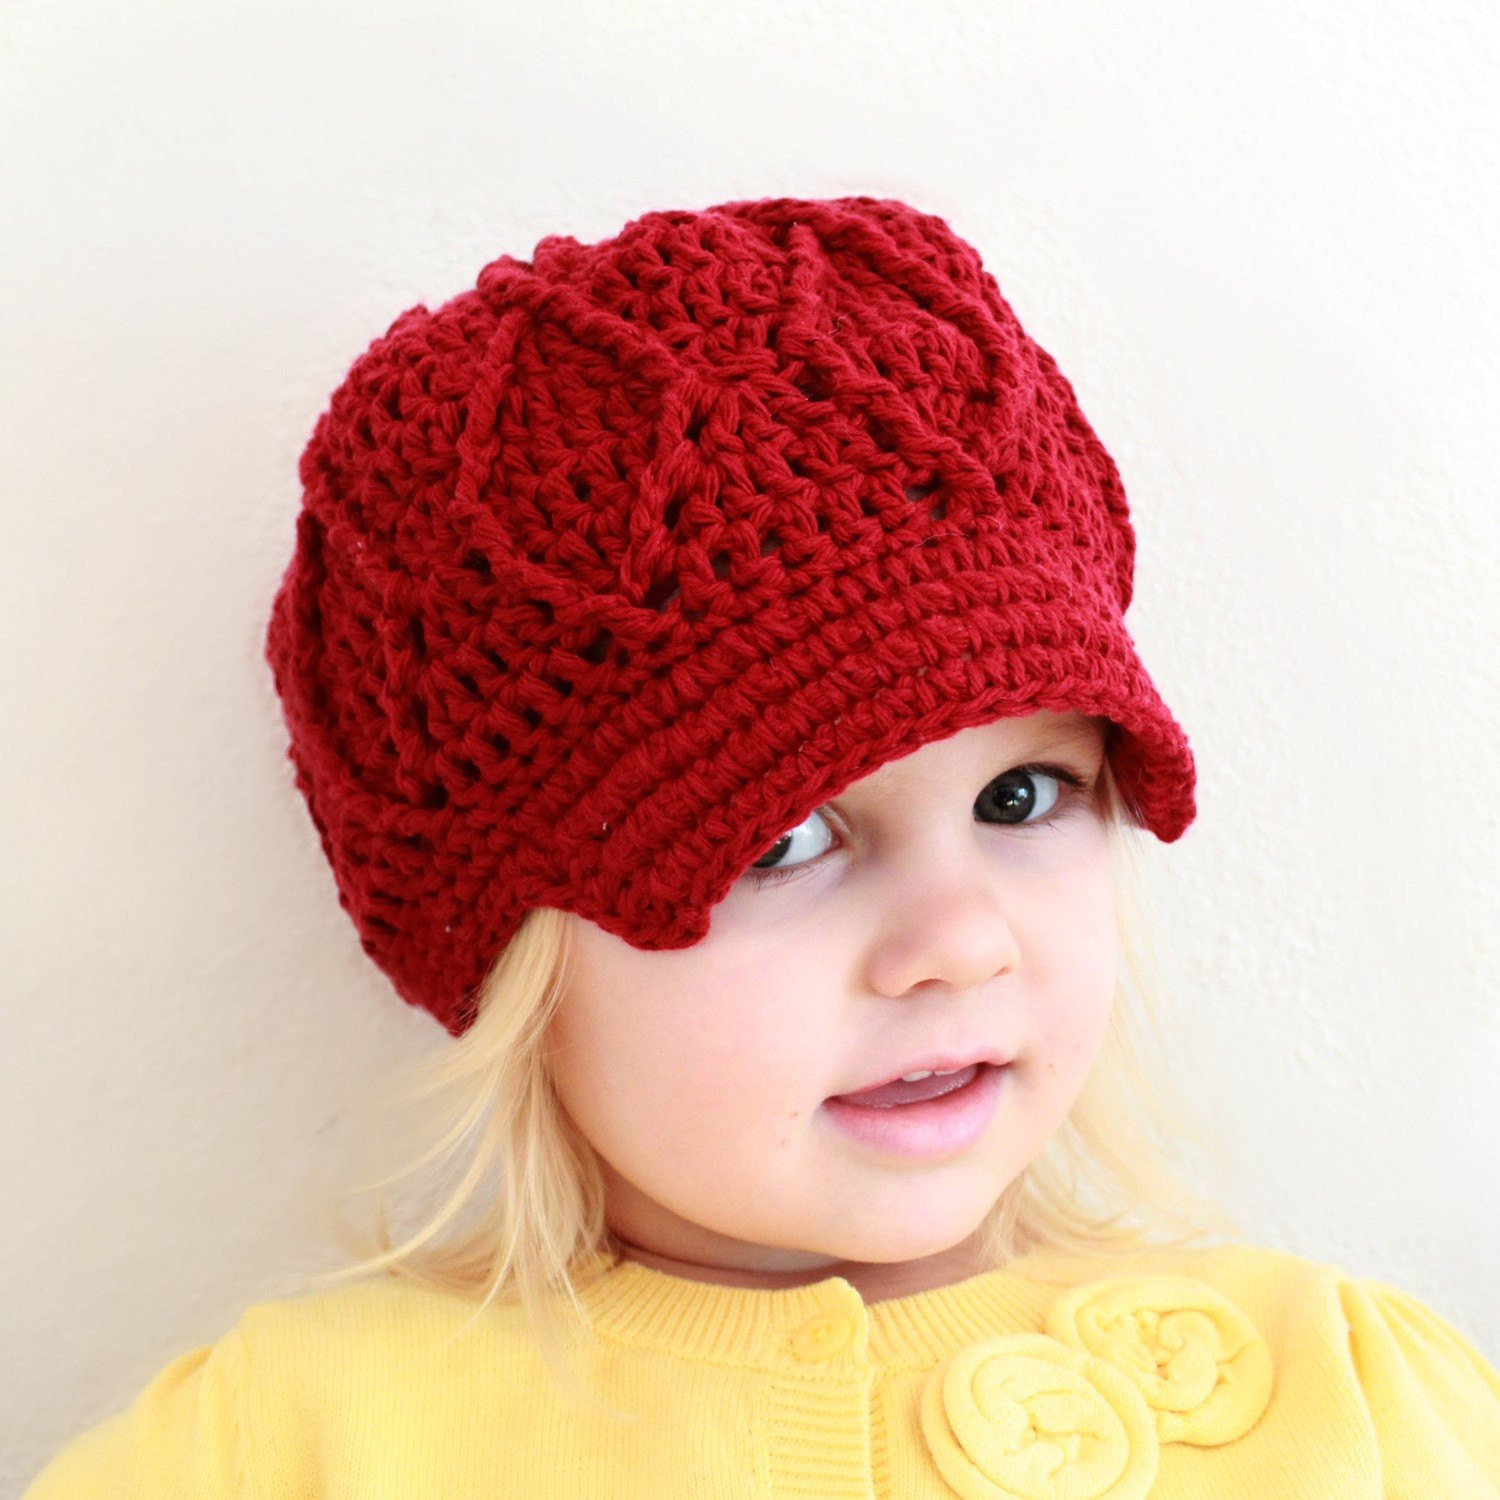 Crochet Girl Hat Awesome Instant Download Crochet Pattern Maggie Newsboy Hat Of Superb 47 Pics Crochet Girl Hat